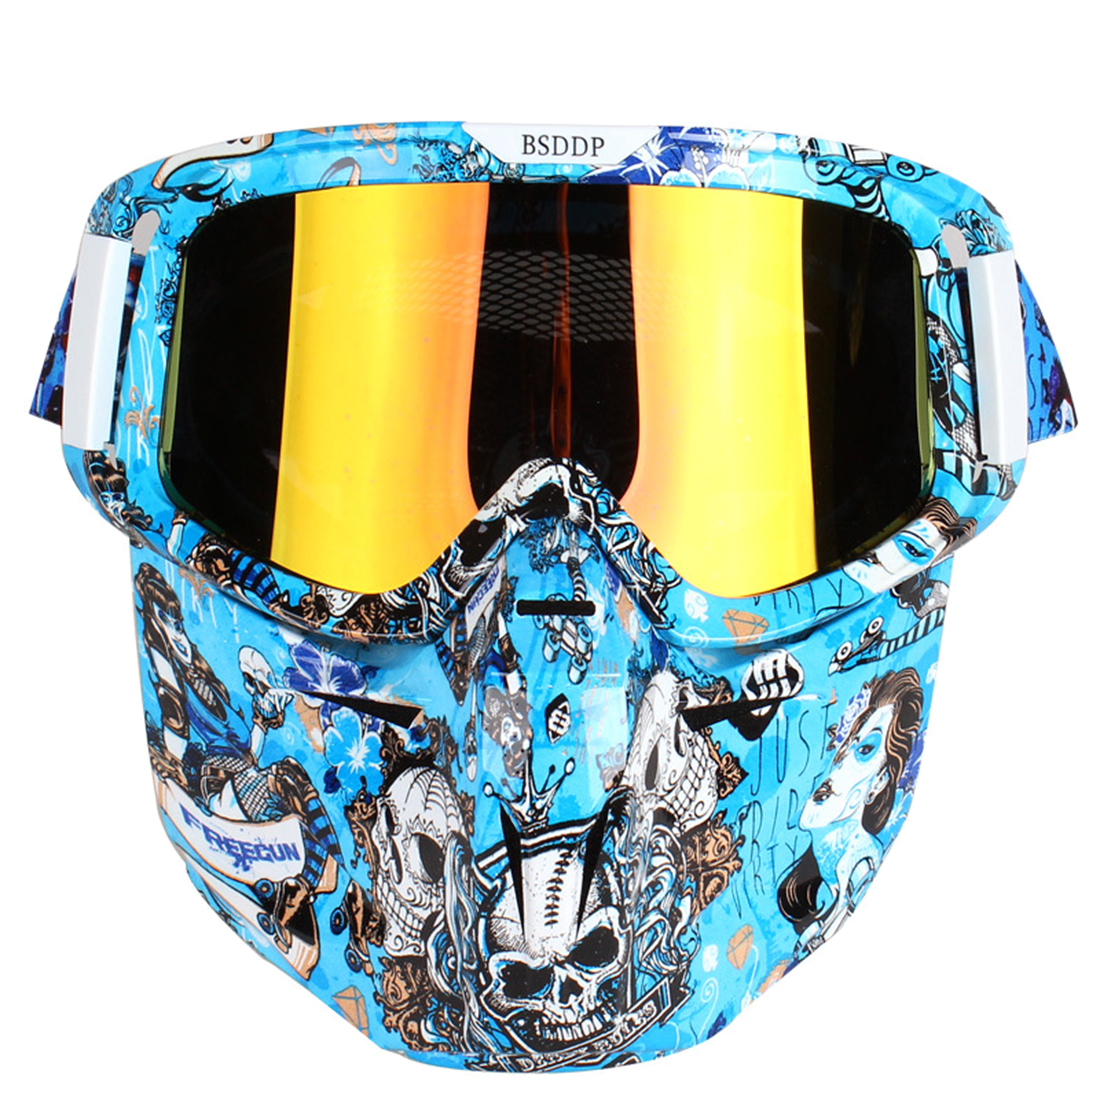 Graffiti Style Tactical Face Protective Mask Detachable Motorcycle Goggles Mask For Outdoor Airsoft Battle Tactical Gear 2019